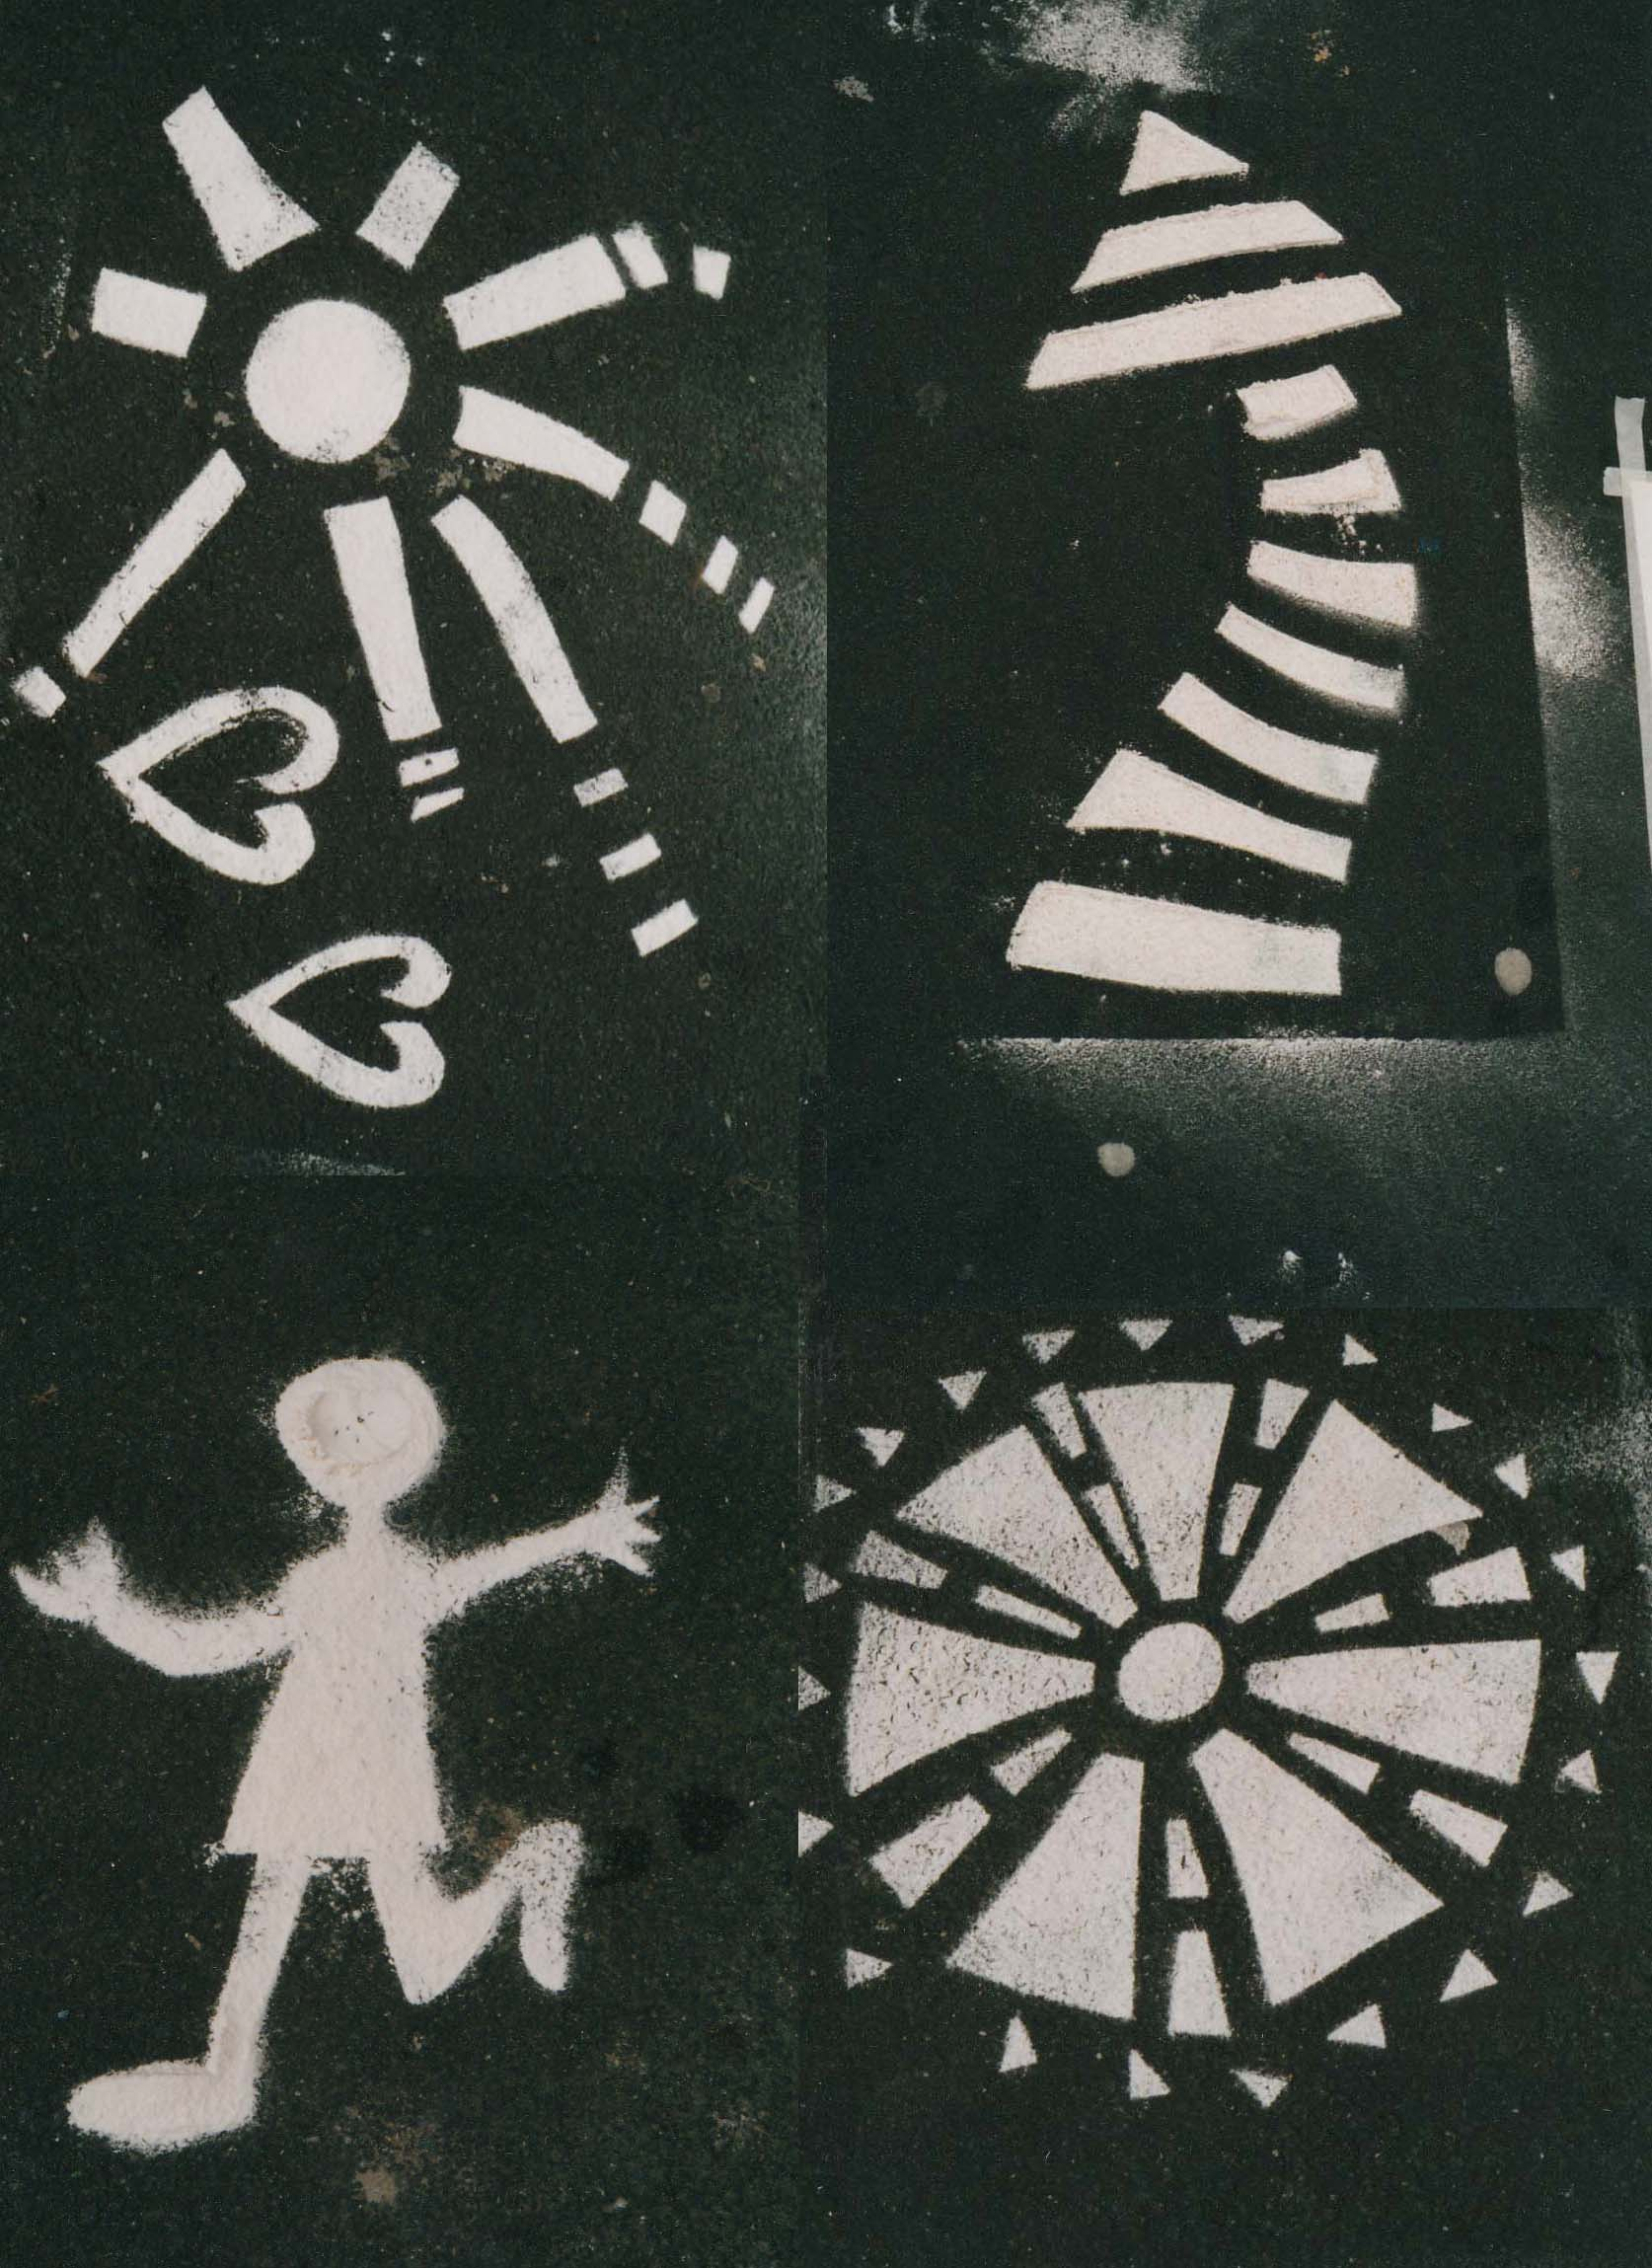 Beating Time 2000 flour stencils